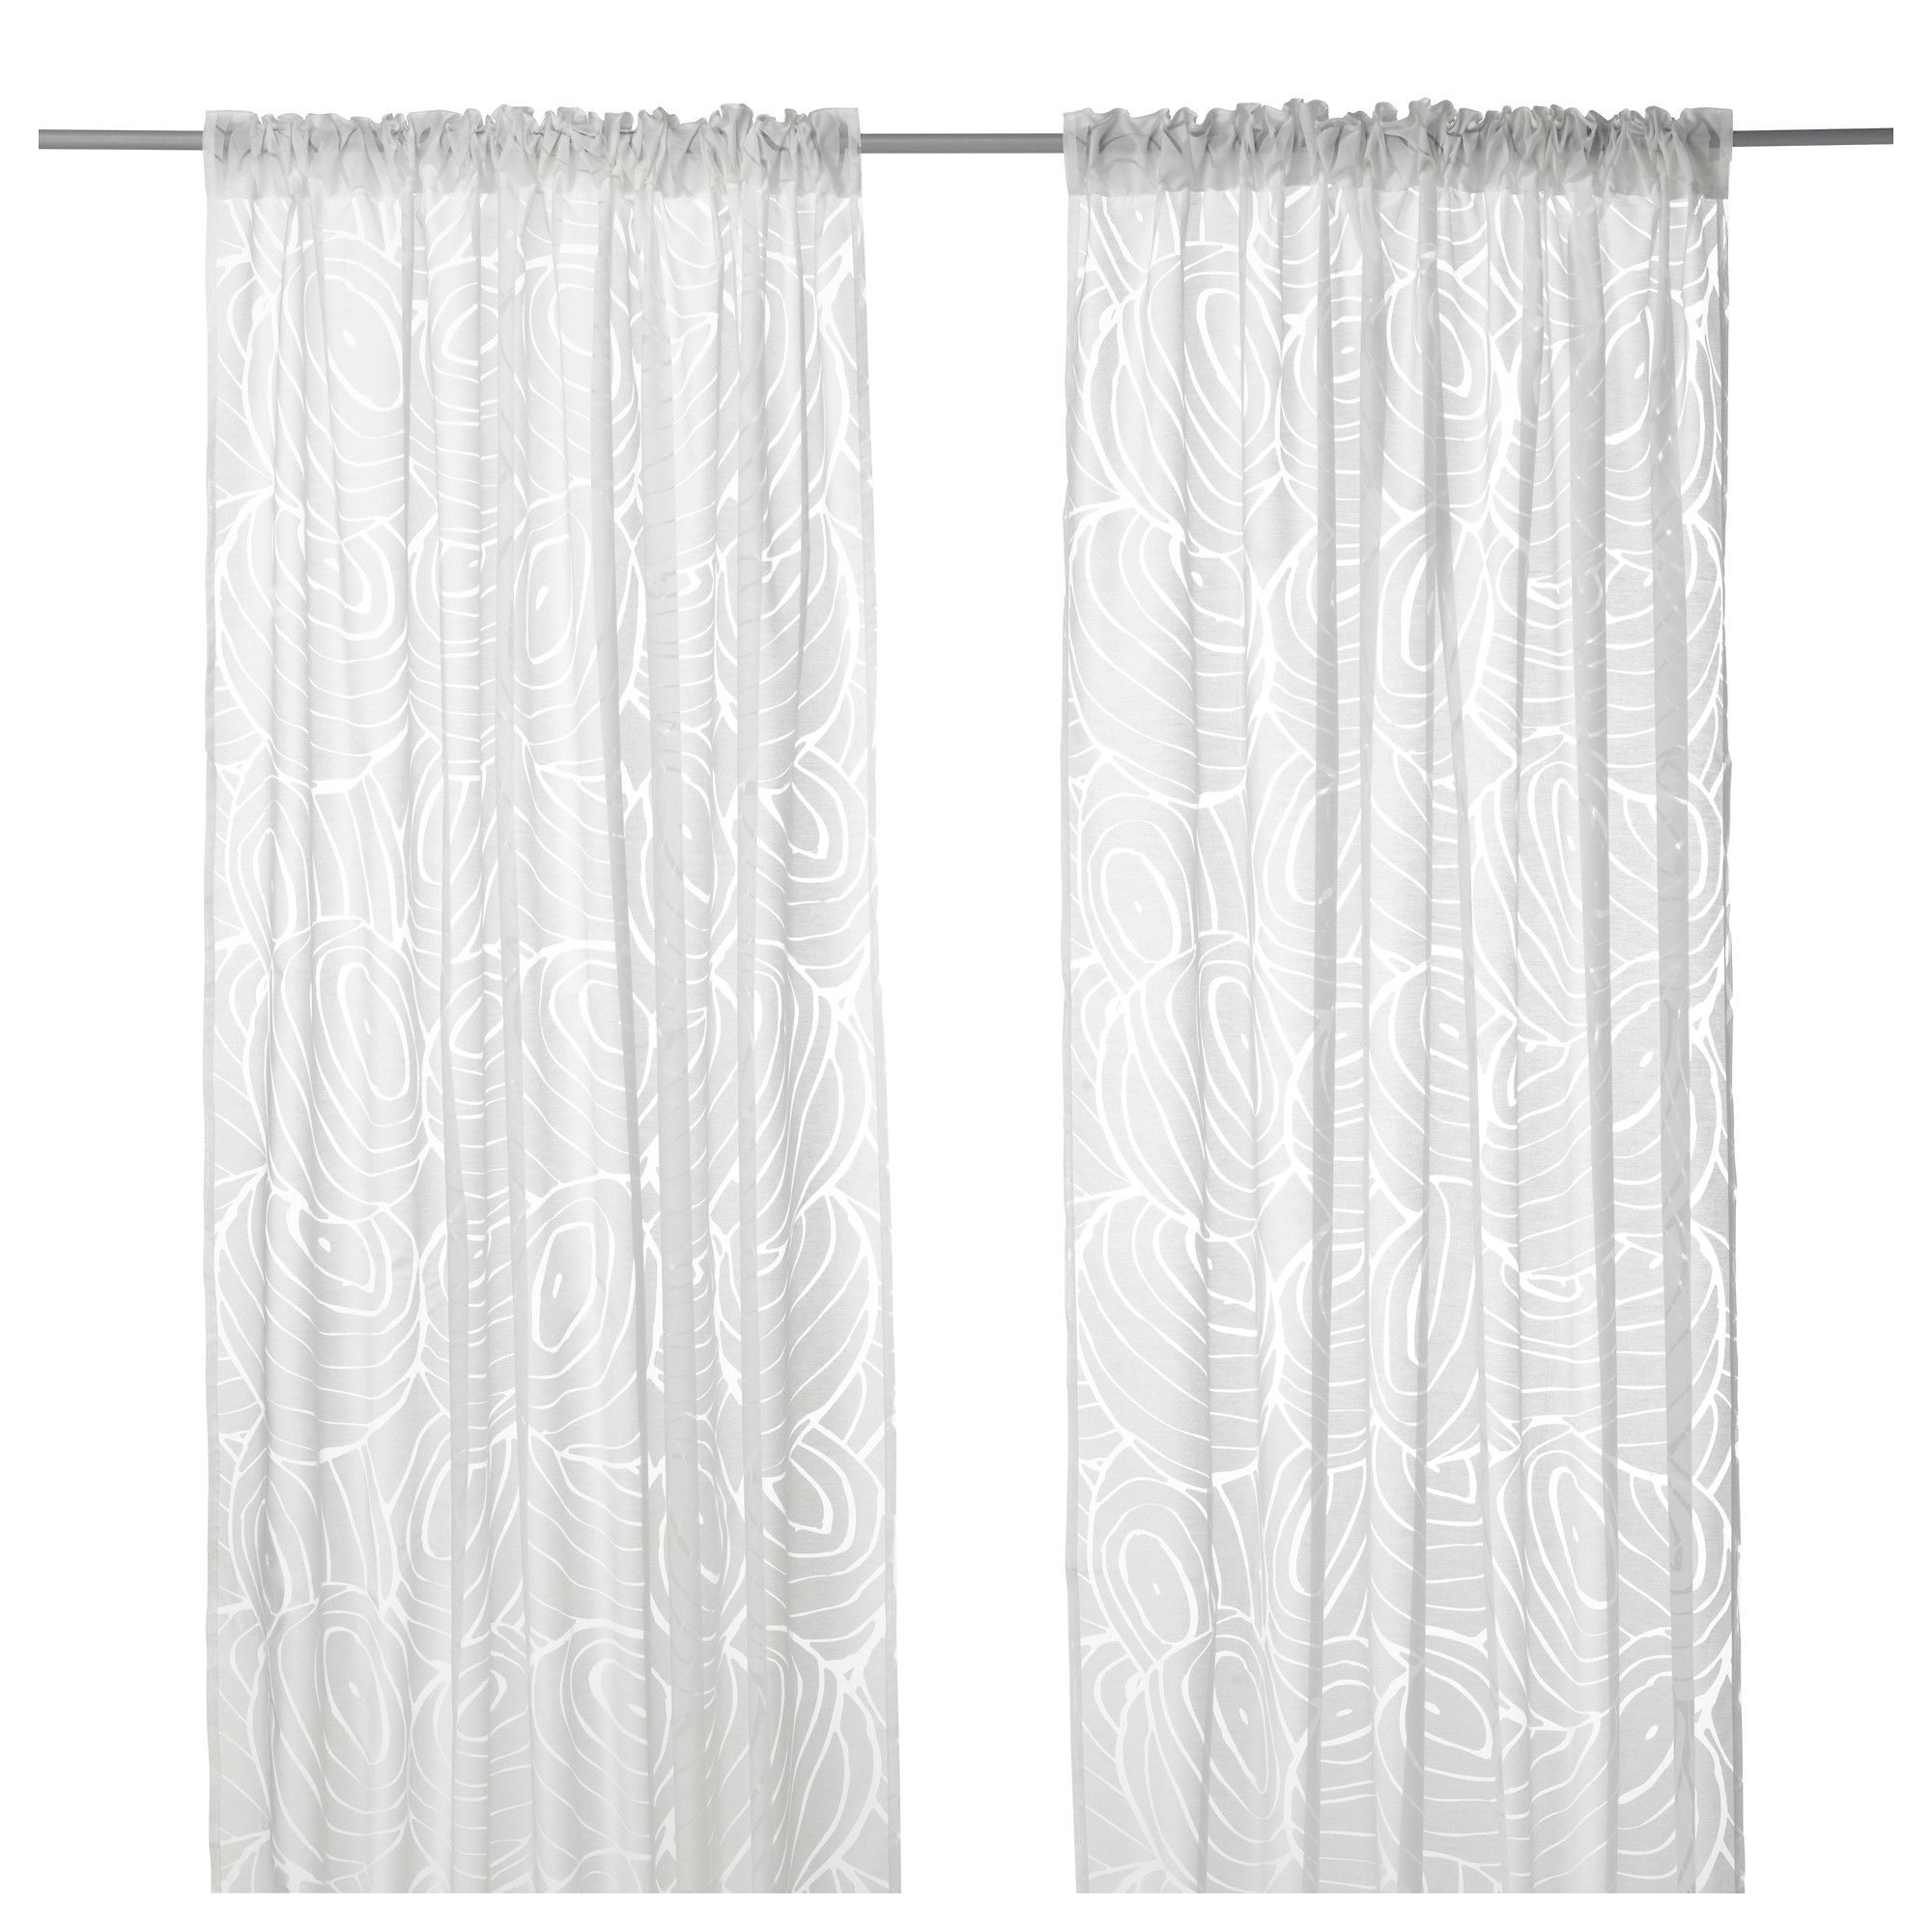 curtain curtains cover luxury duvet tape mattress with plaid suitable gathering bedspread two bedspreadscurtains sets bedding en blanket bedspreads freikopie collection cream empress for creme